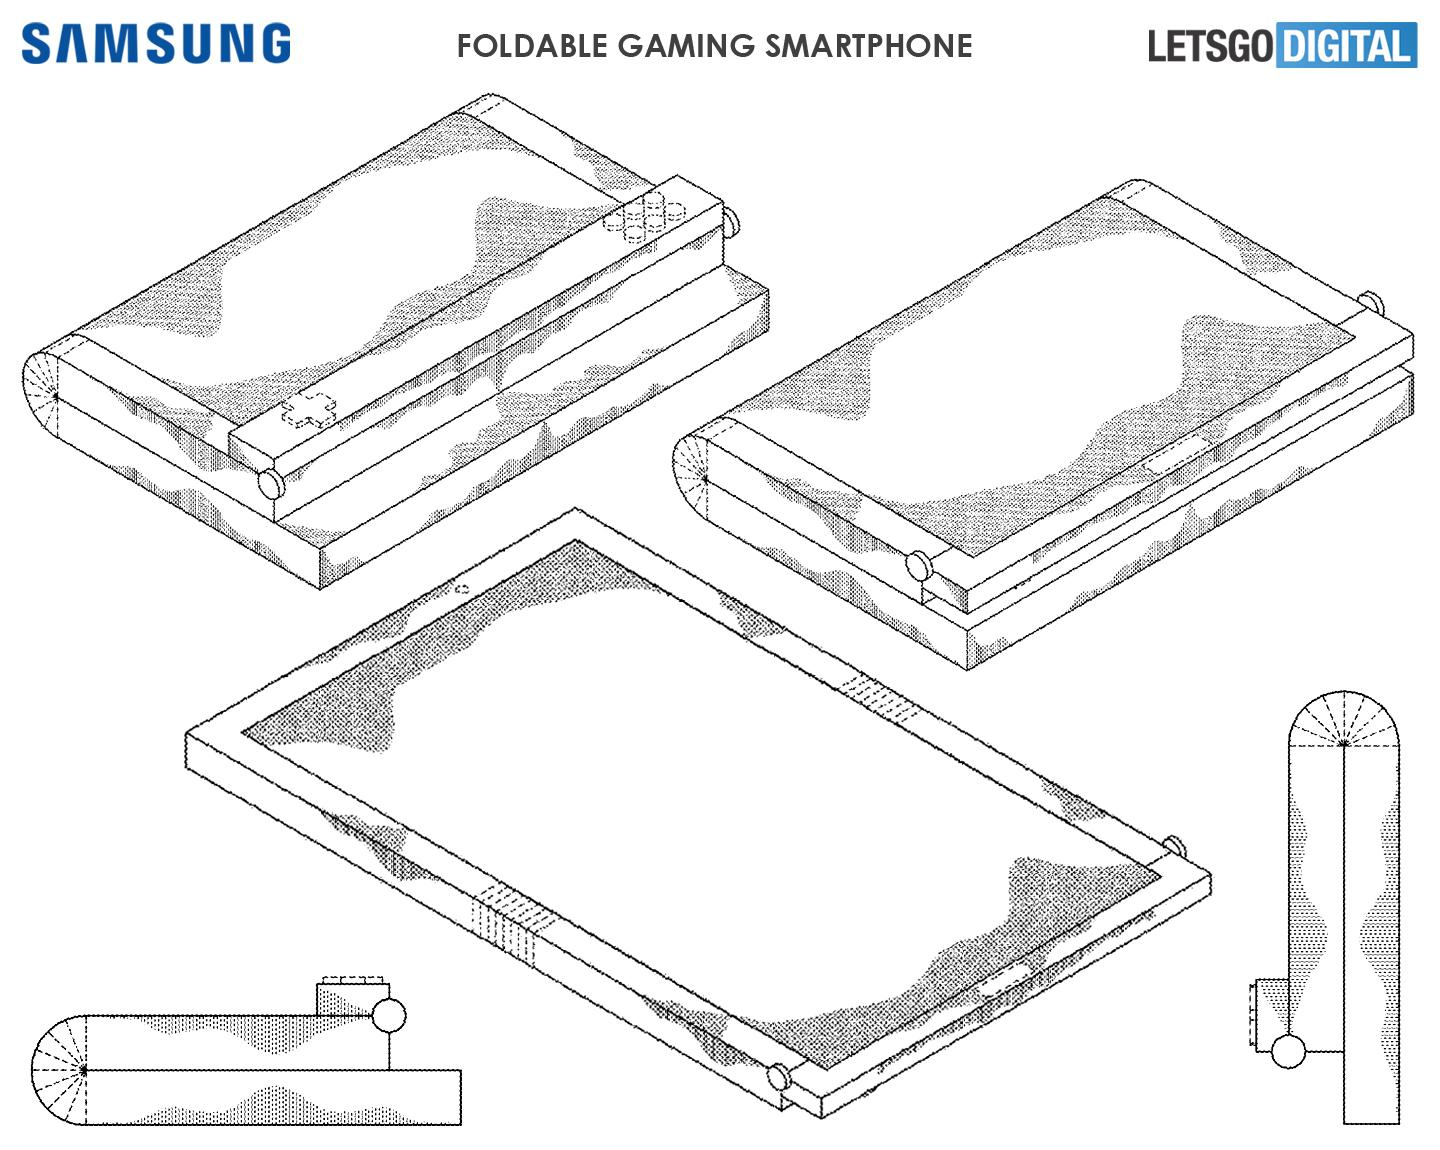 Samsung accidentally reveals foldable Galaxy F